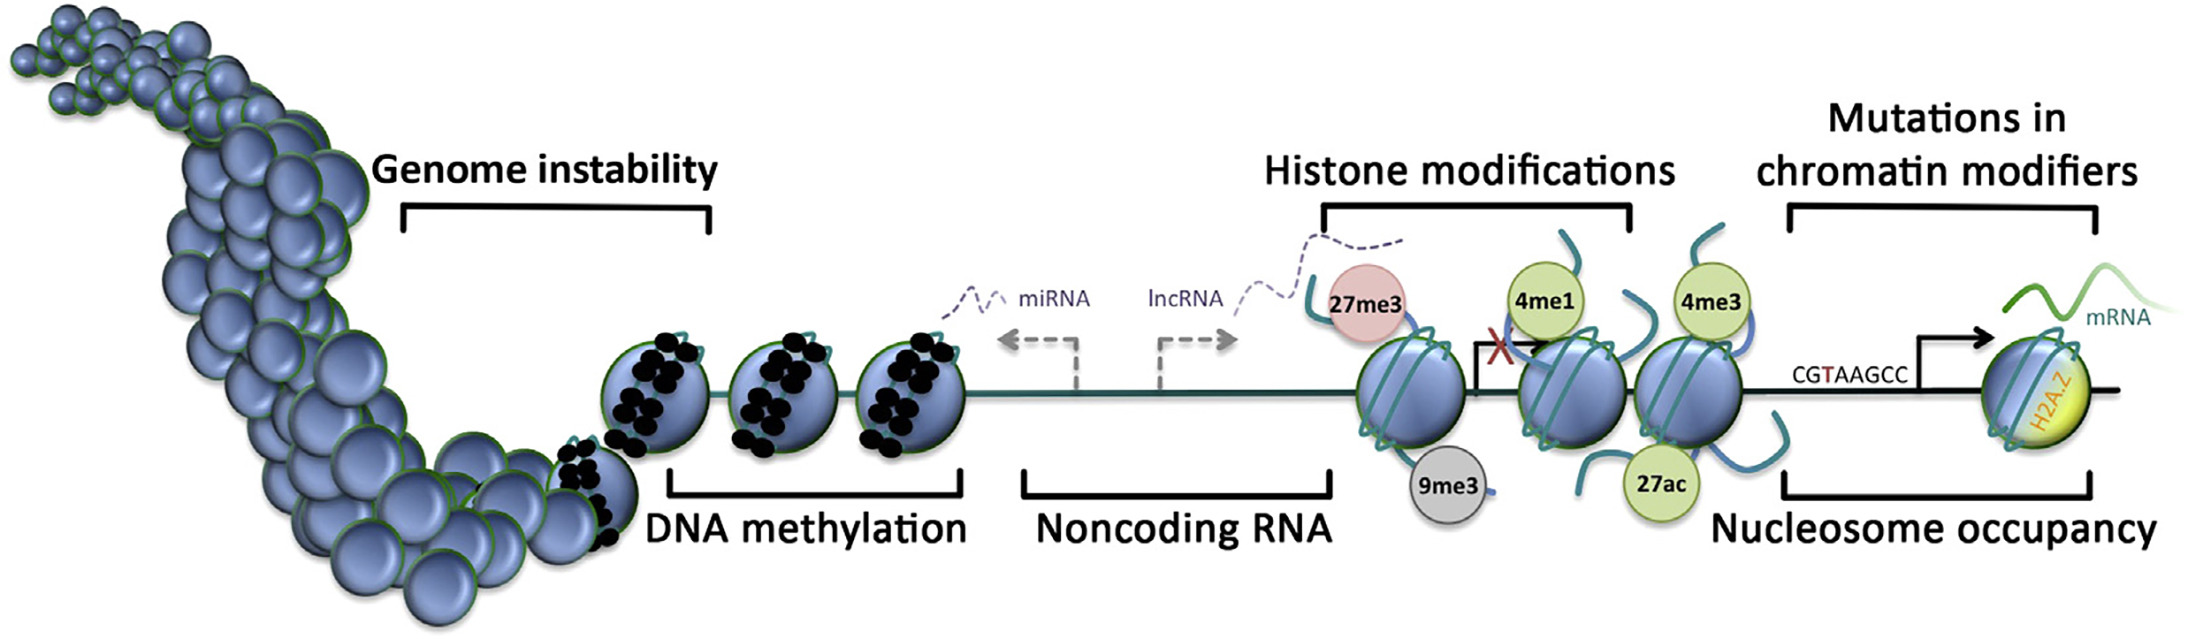 Epigenetic hallmarks of the cancer genome. Nucleosome, blue circle; DNA methylation, small black circle; transcriptional start site, arrow; inactive transcriptional start site, red cross; H3K27 trimethylation, 27me3 (red, repressed); H3K9 trimethylation, 9me3 (gray, silenced); H3K4 monomethylation, 4me1 (green, active); H3K4 trimethylation, 4me3 (green, active); H3K27 acetylation, 27ac (green, active).